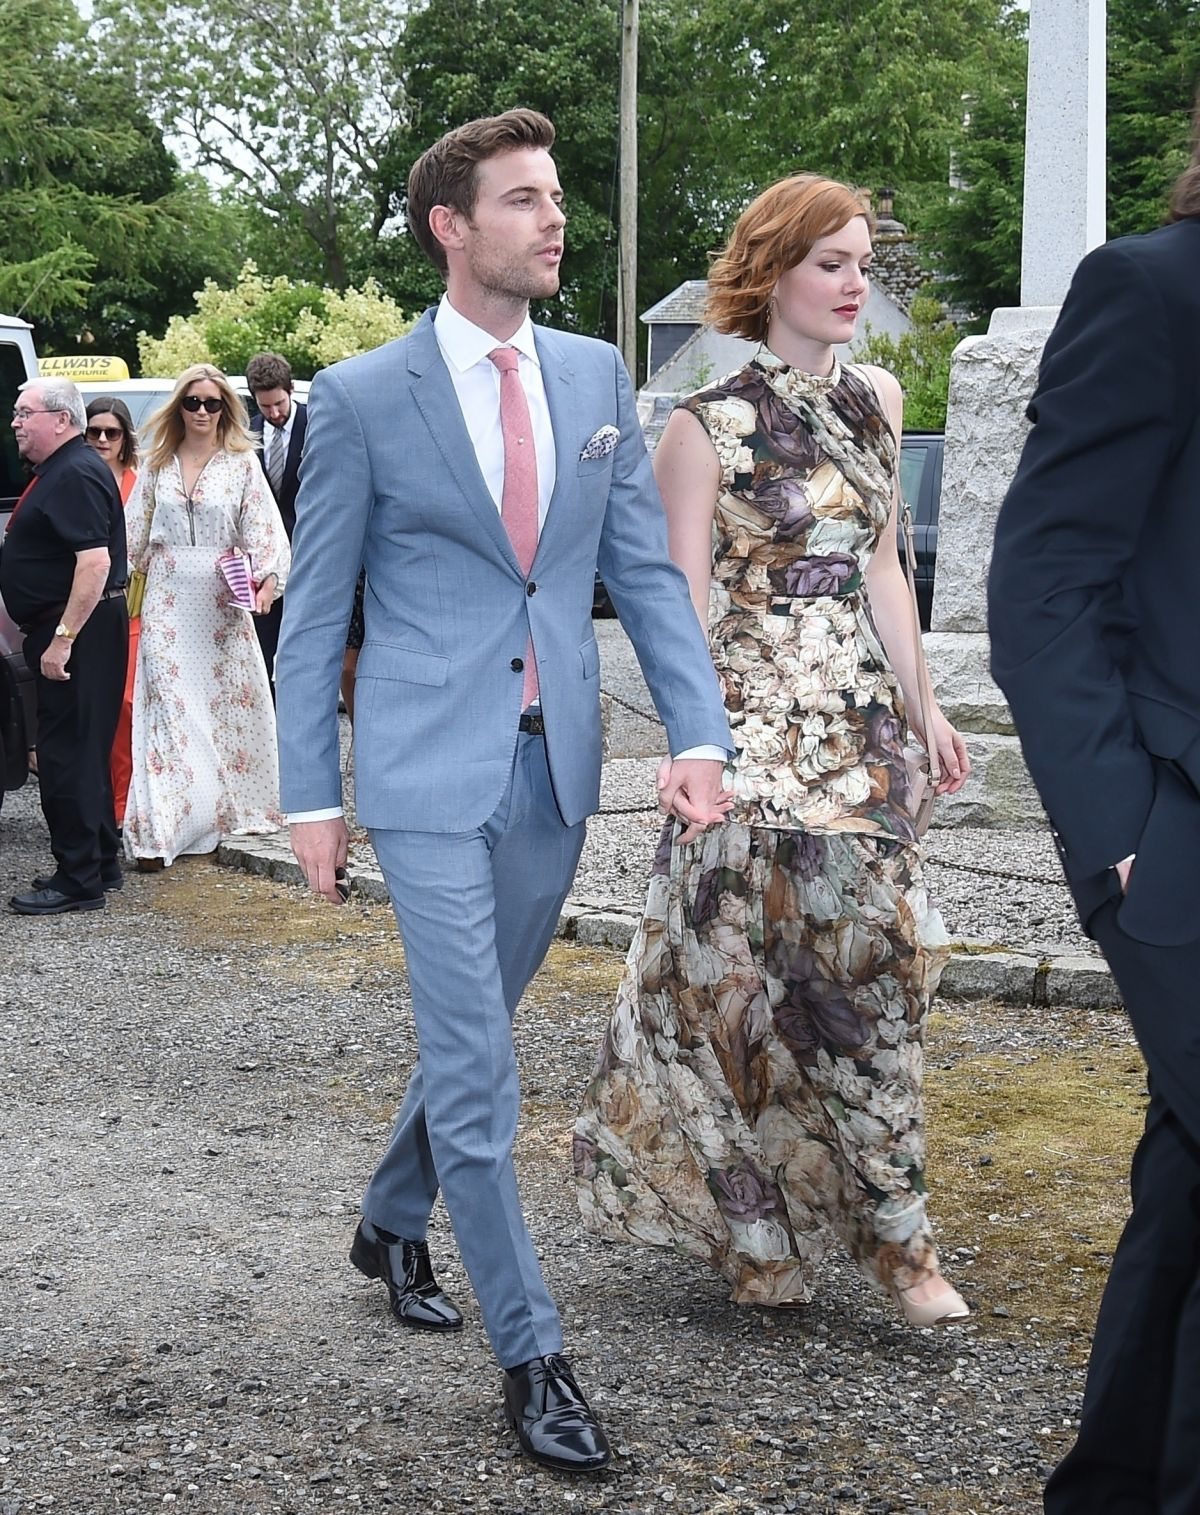 Kit Harington Wedding.Holliday Grainger At Kit Harington And Rose Leslie Wedding At Rayne